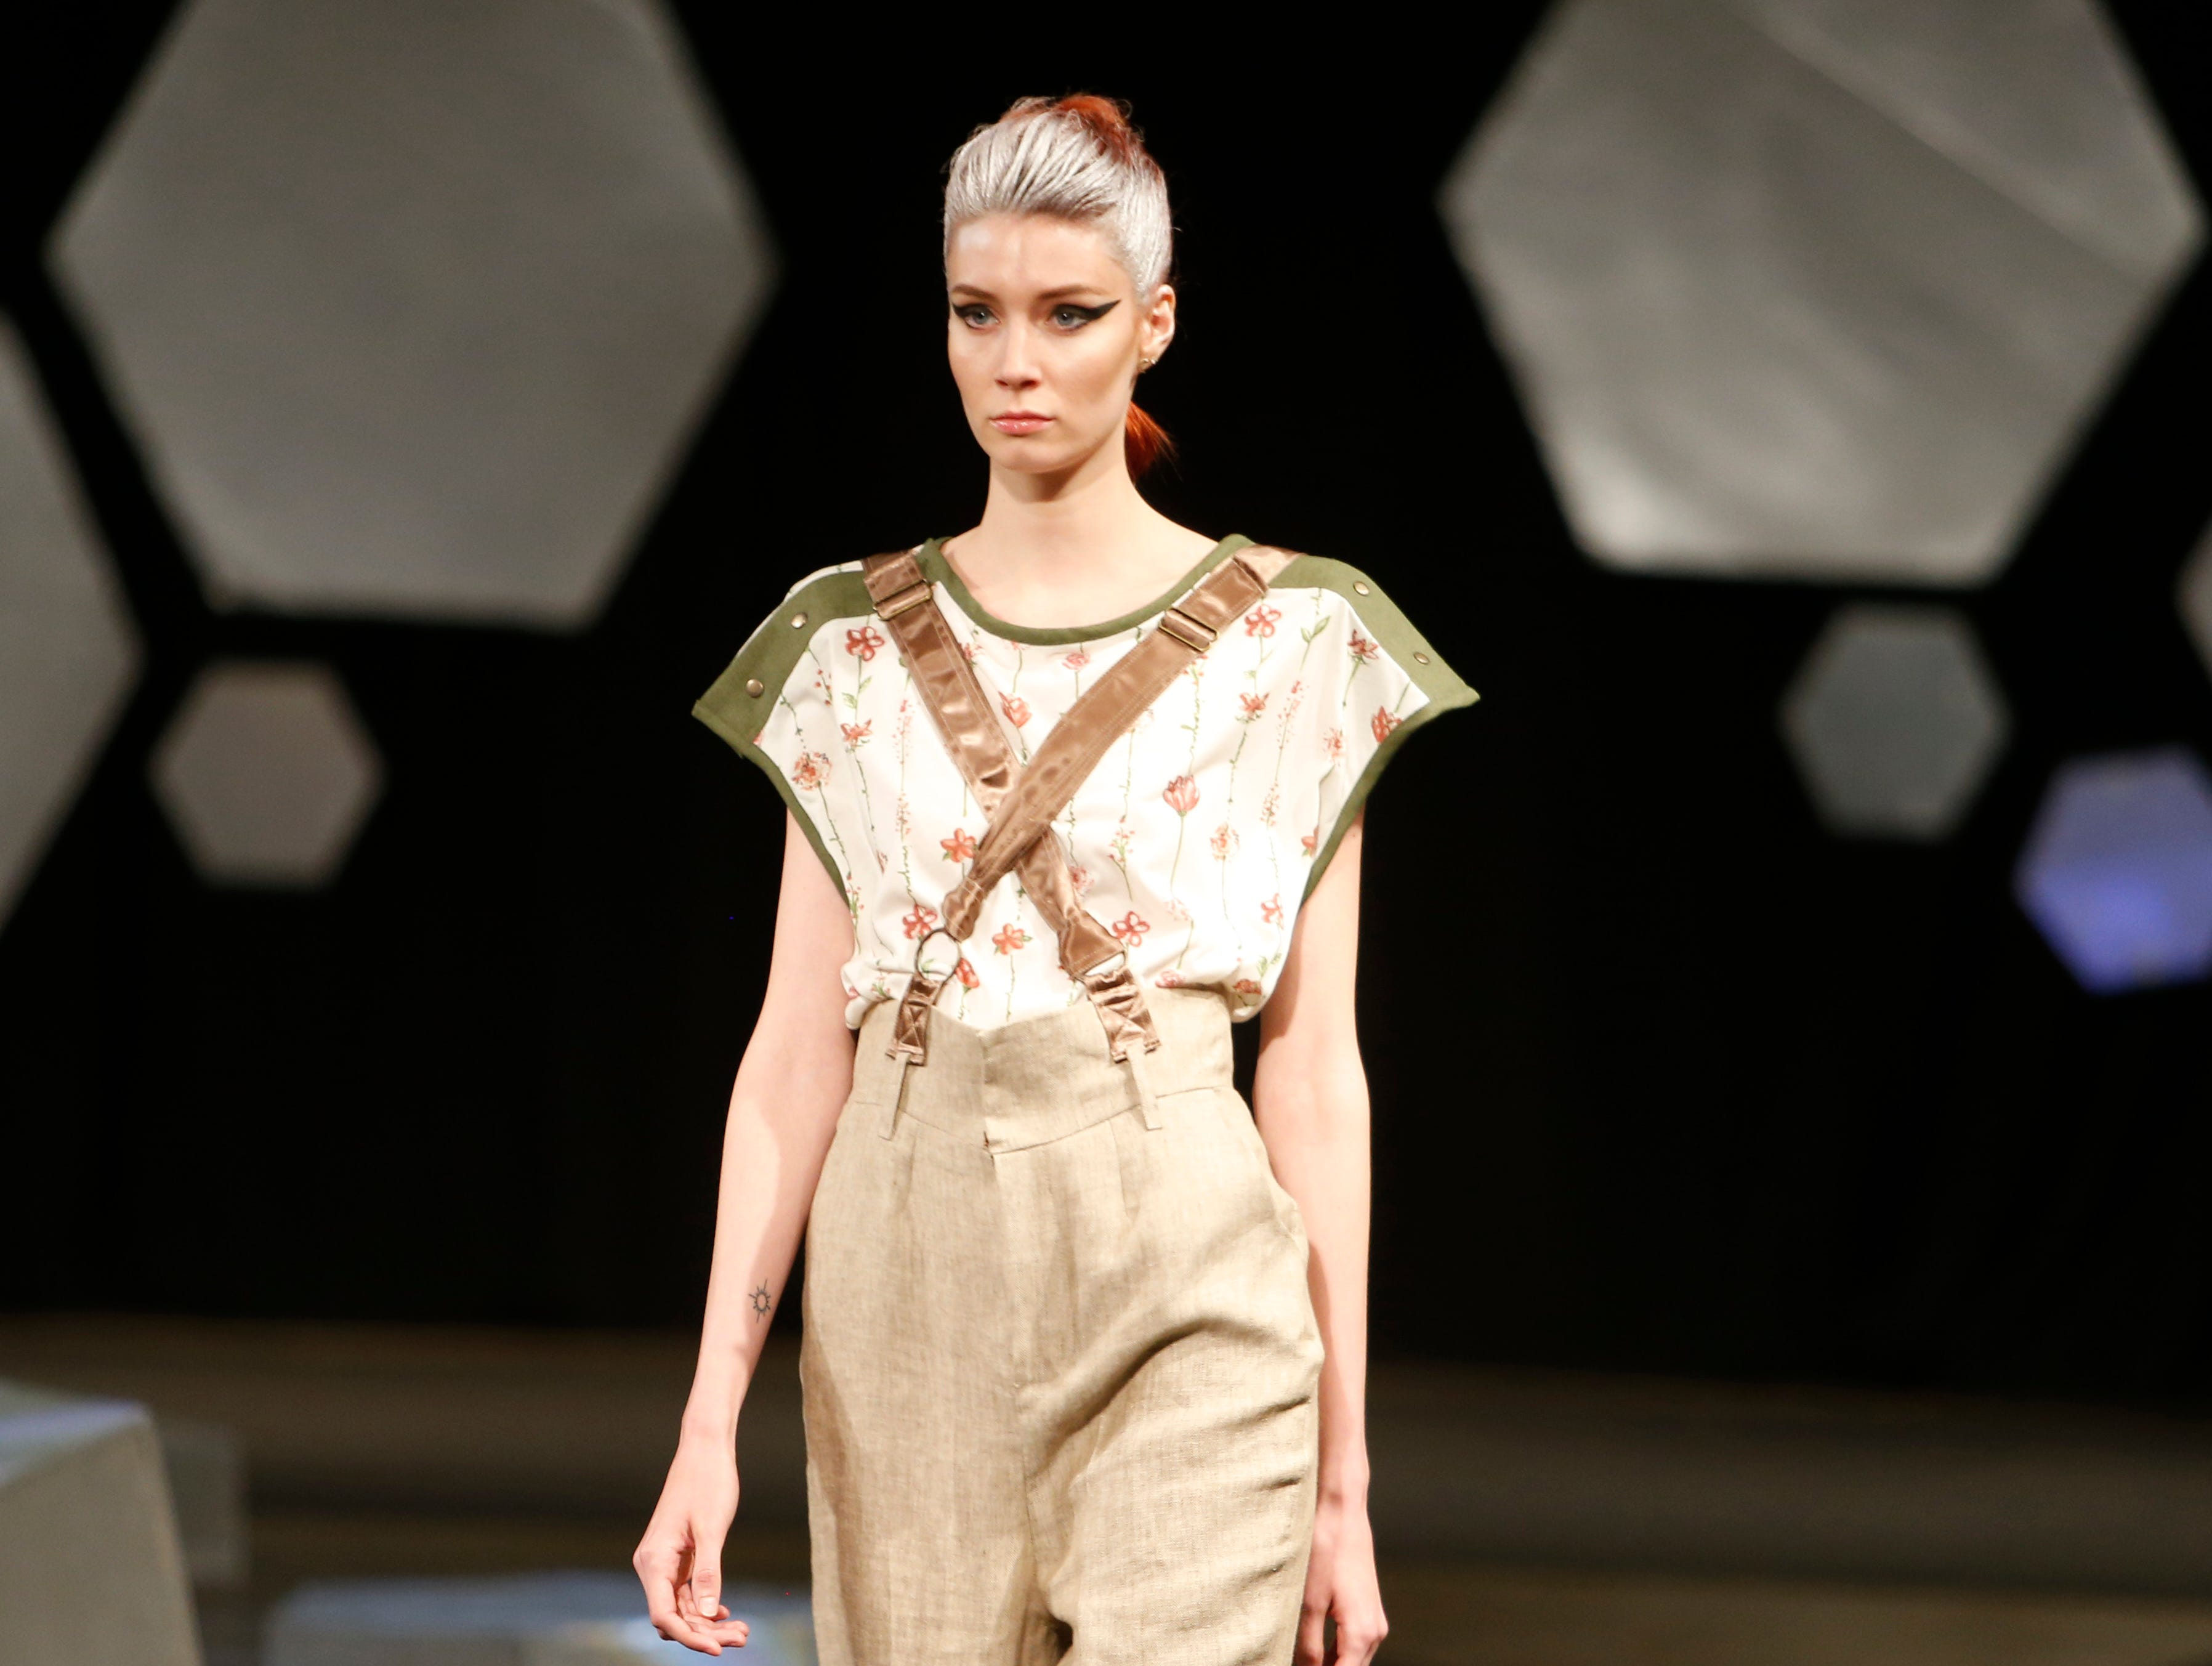 Designs from the collection of Marist College Fashion Department senior Peggy Chiang during the 33rd Marist College Silver Needle Runway Show on May 10, 2019.